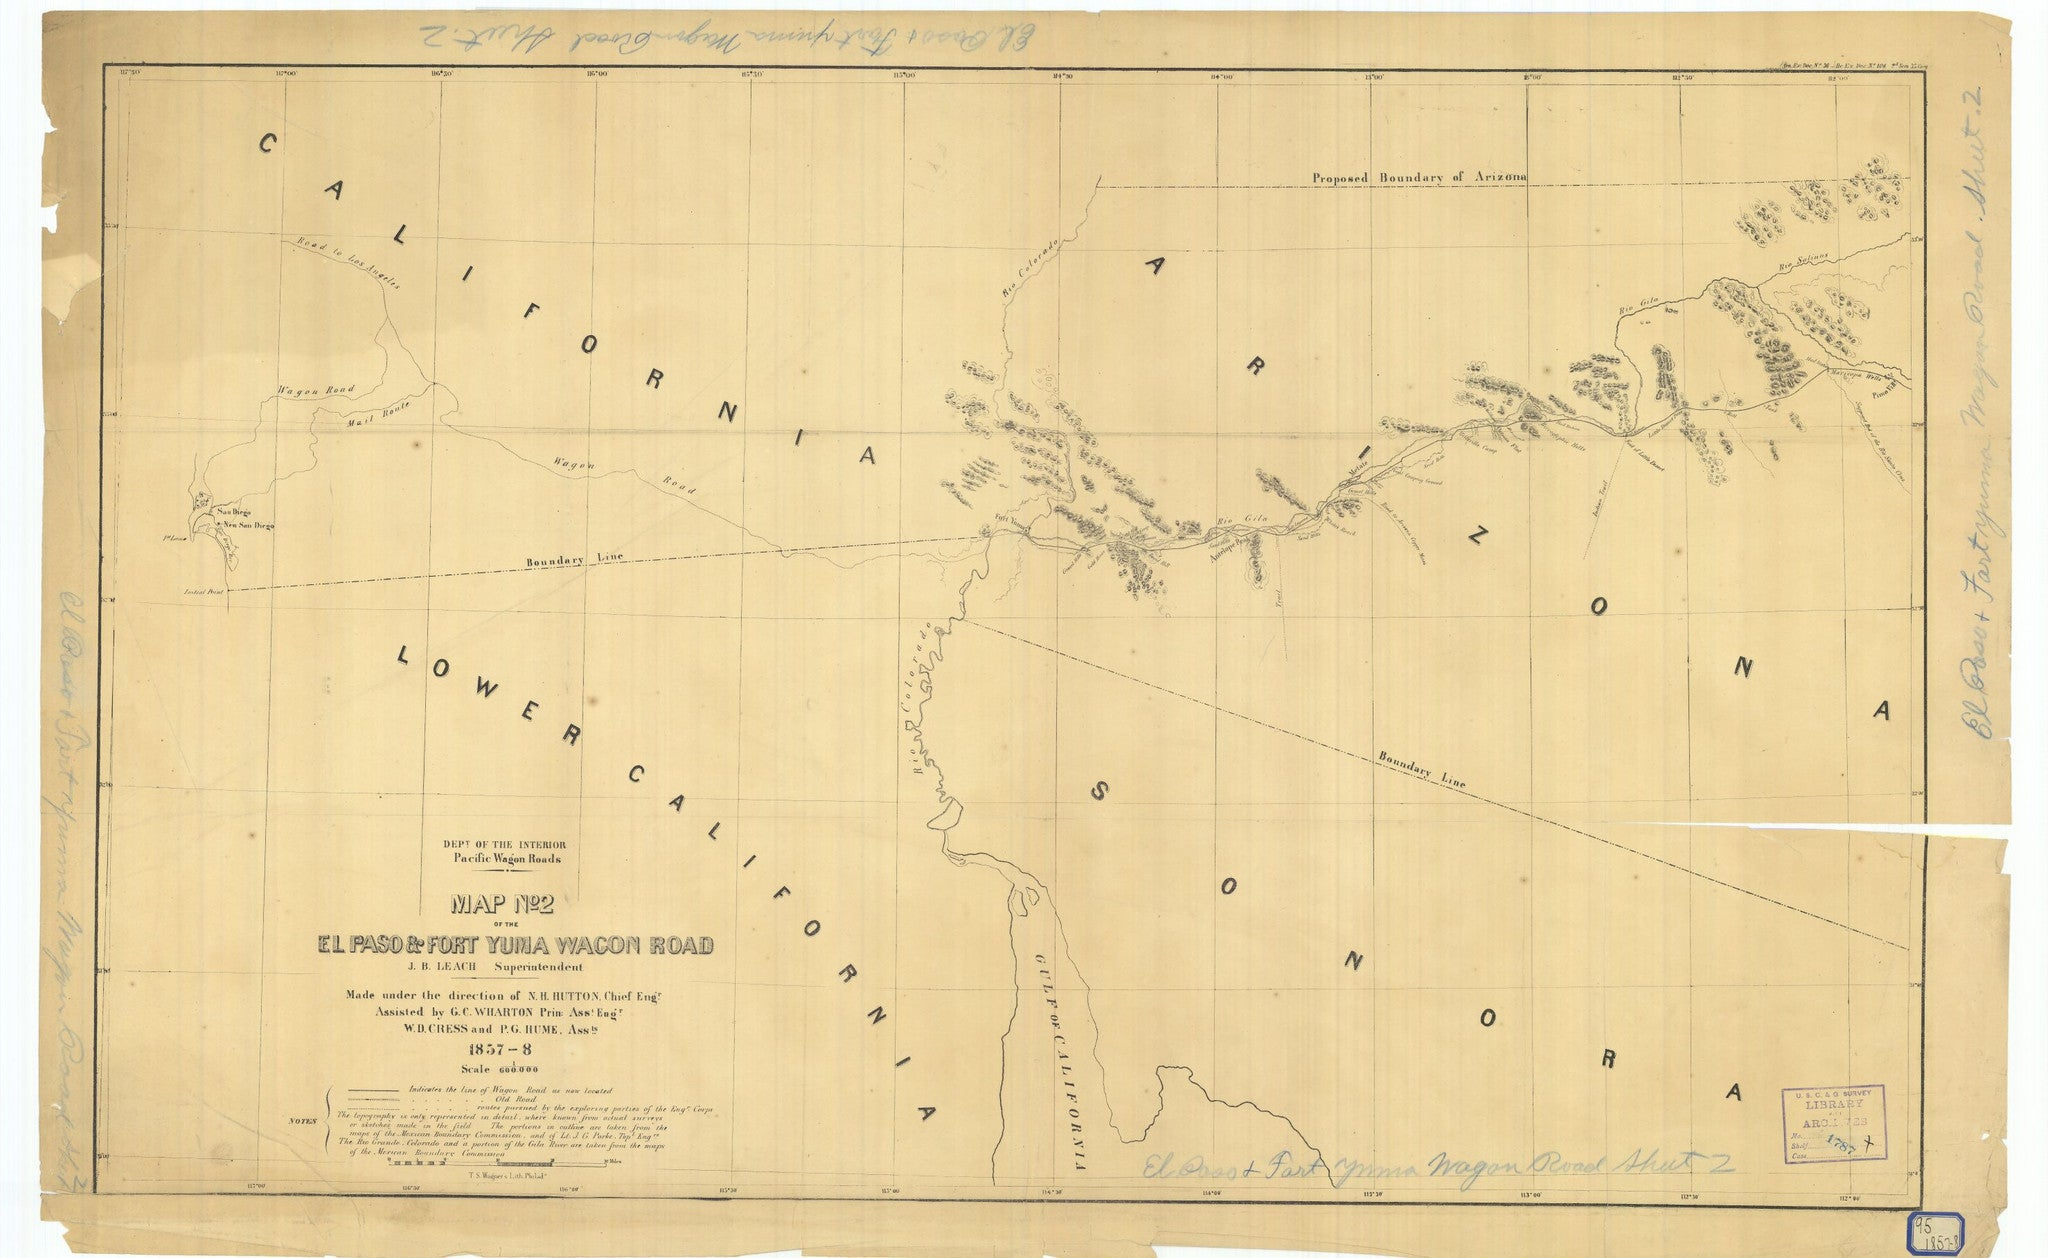 Map Number 2 Of The El Paso And Fort Yuma Wagon Road Print on map of nolan county, map of young county, map of ft bliss, map of culiacan, map of cancún, map of wilkes-barre, map of houston, map of colonial heights, map of tampa st petersburg, map of santa teresa, map of rio rico, map of corbin, map of liberal, map of austin, map of ft stockton, map of indiana in, map of eastern id, map of beebe, map of hamtramck, map arizona,